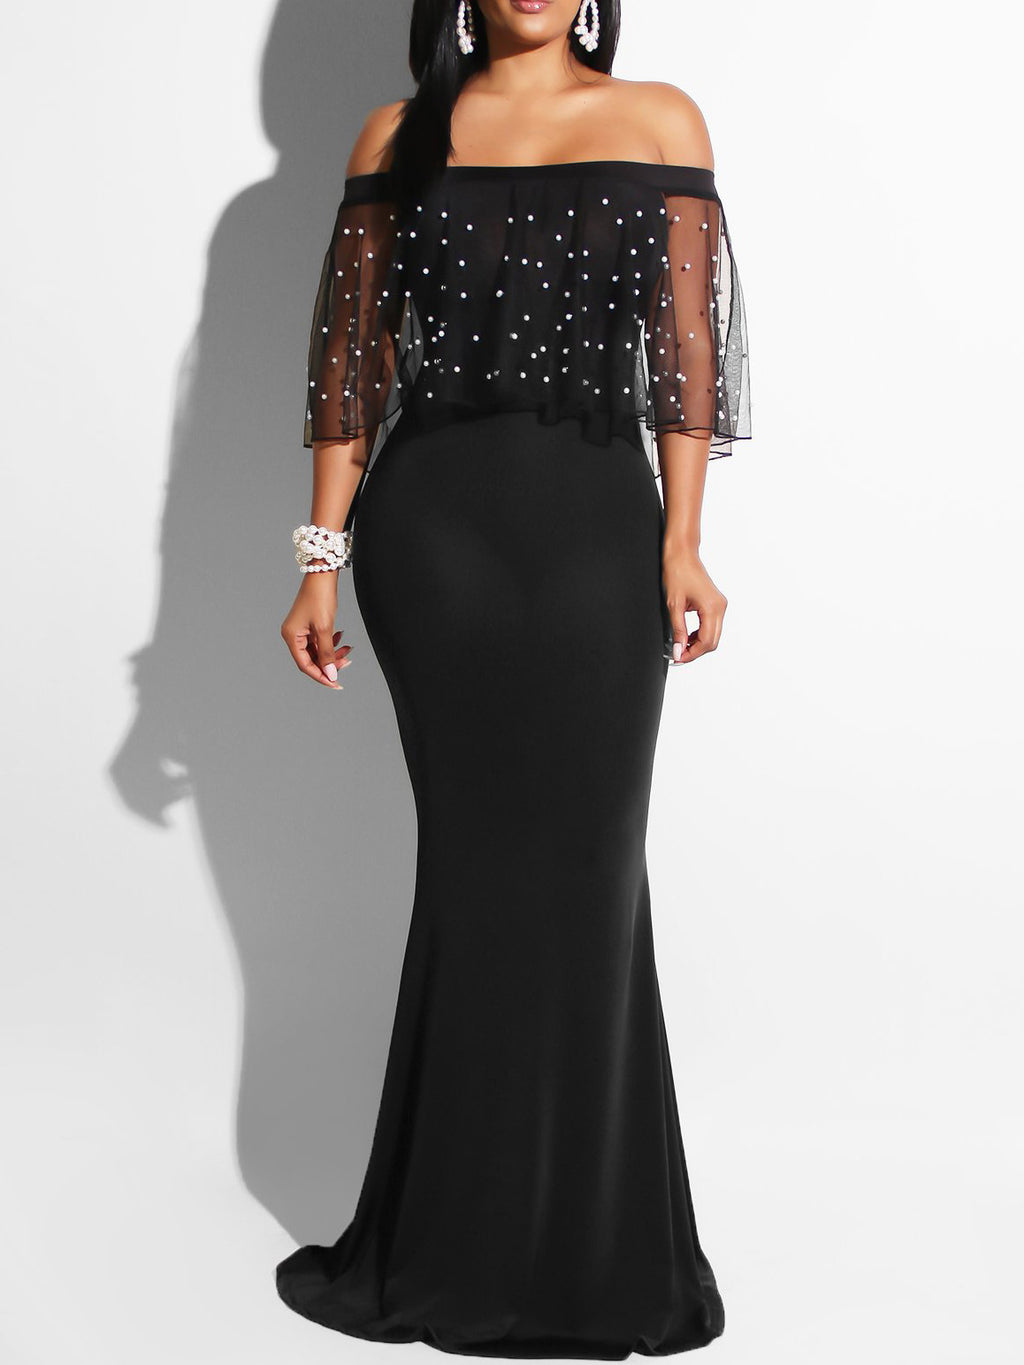 Black Plus Size Evening Gowns Beaded Mesh Cold Shoulder Mermaid Bodycon Maxi Dresses Rikkishop